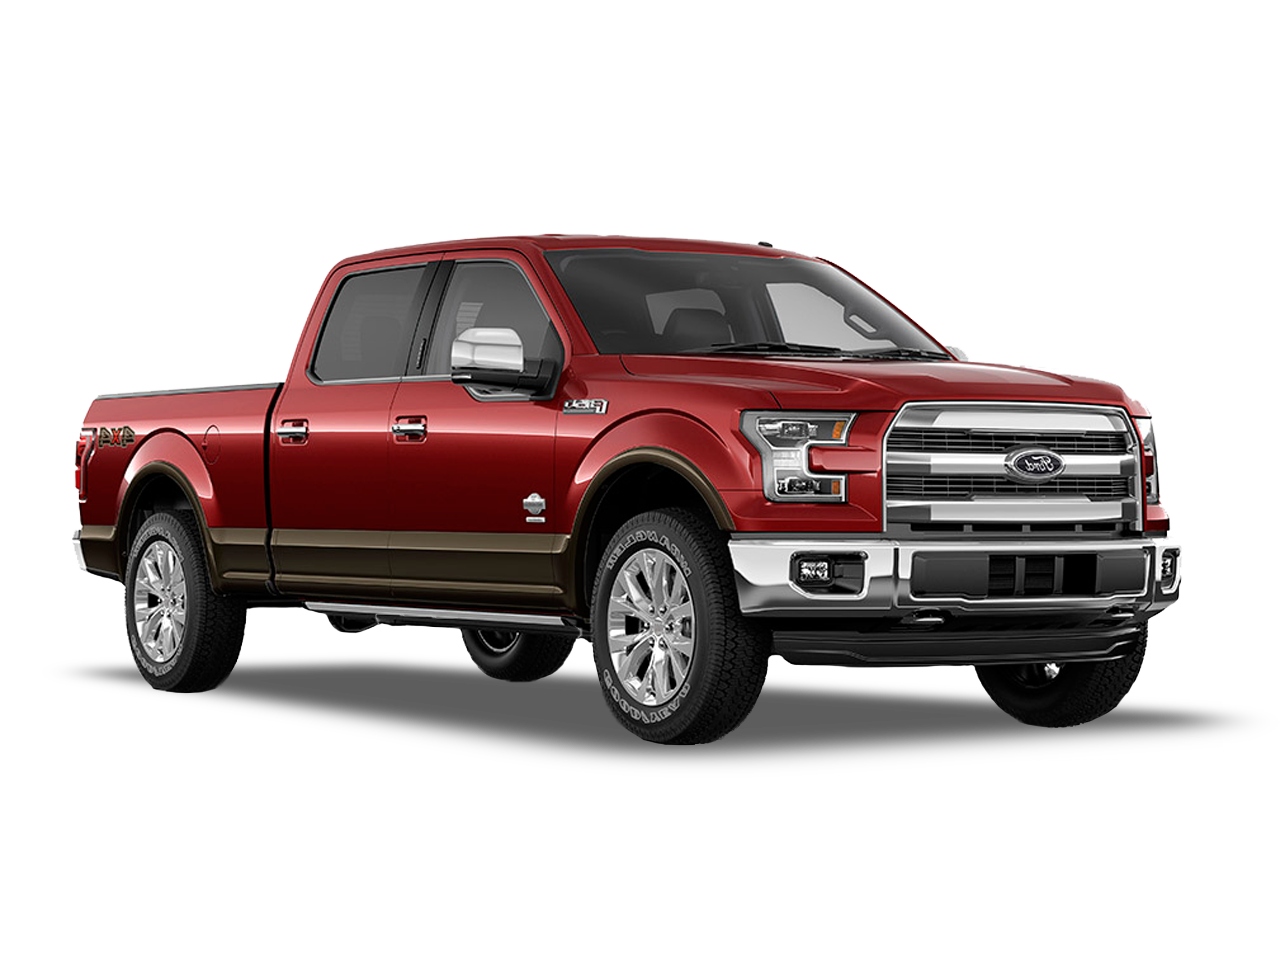 buy or lease the new 2017 f 150 near boston quirk ford. Black Bedroom Furniture Sets. Home Design Ideas